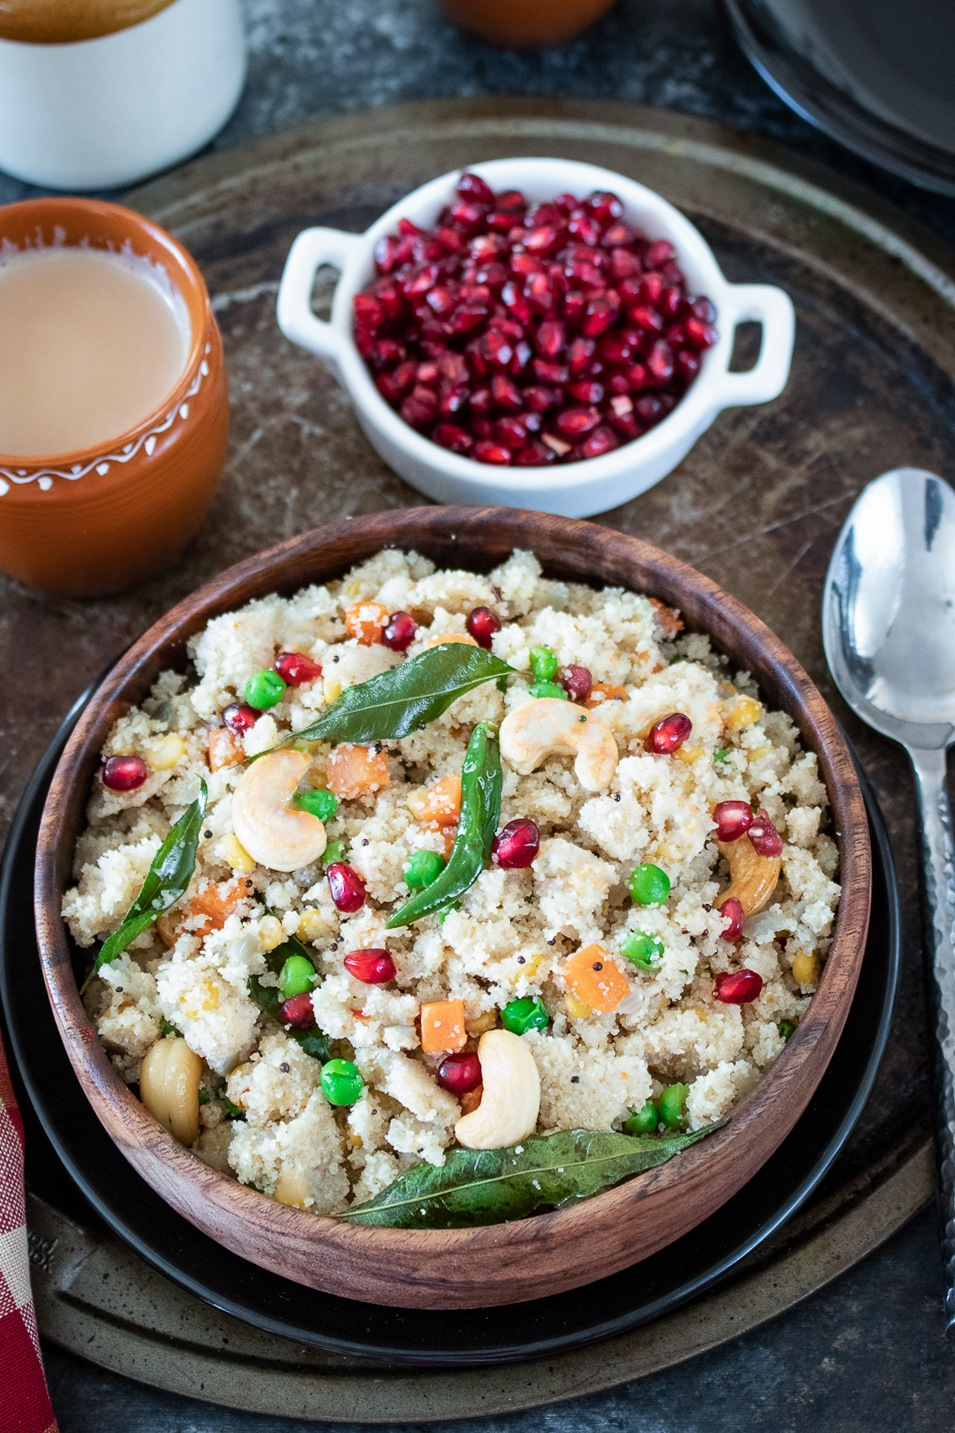 Upma with tea and pomegranate